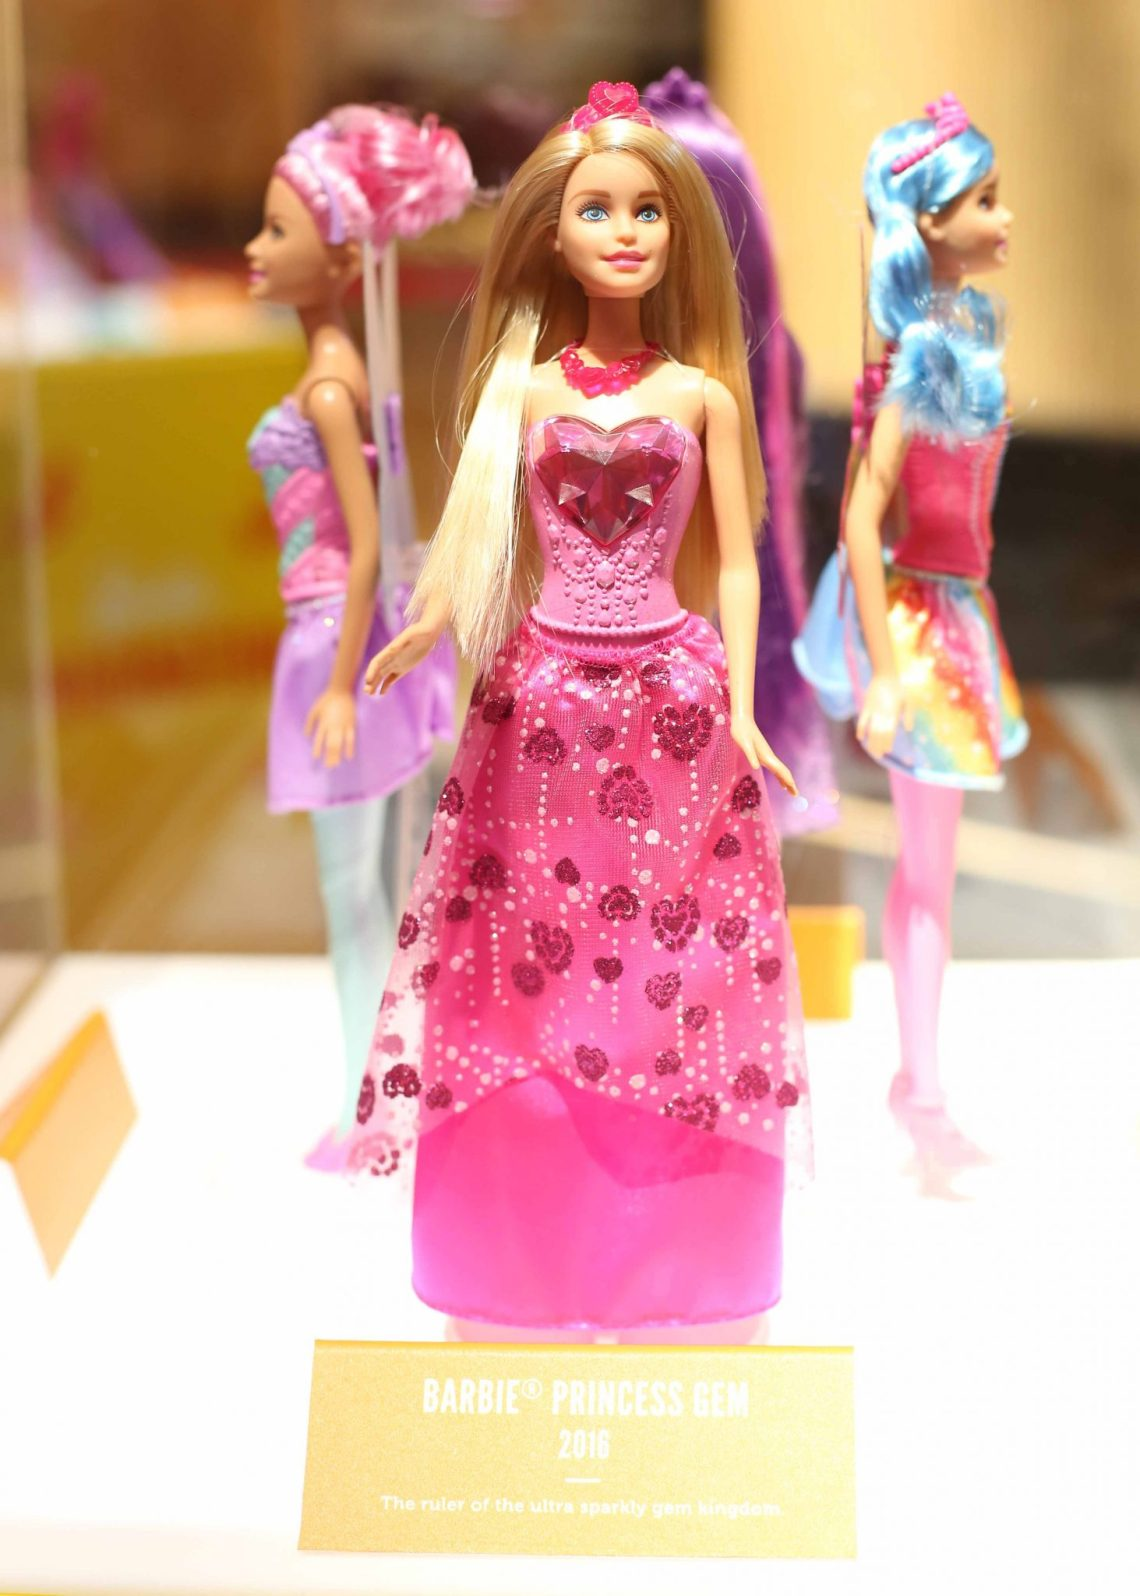 BARBIE_ World of Endless Possibilities Exhibition 15_smartdory 2016